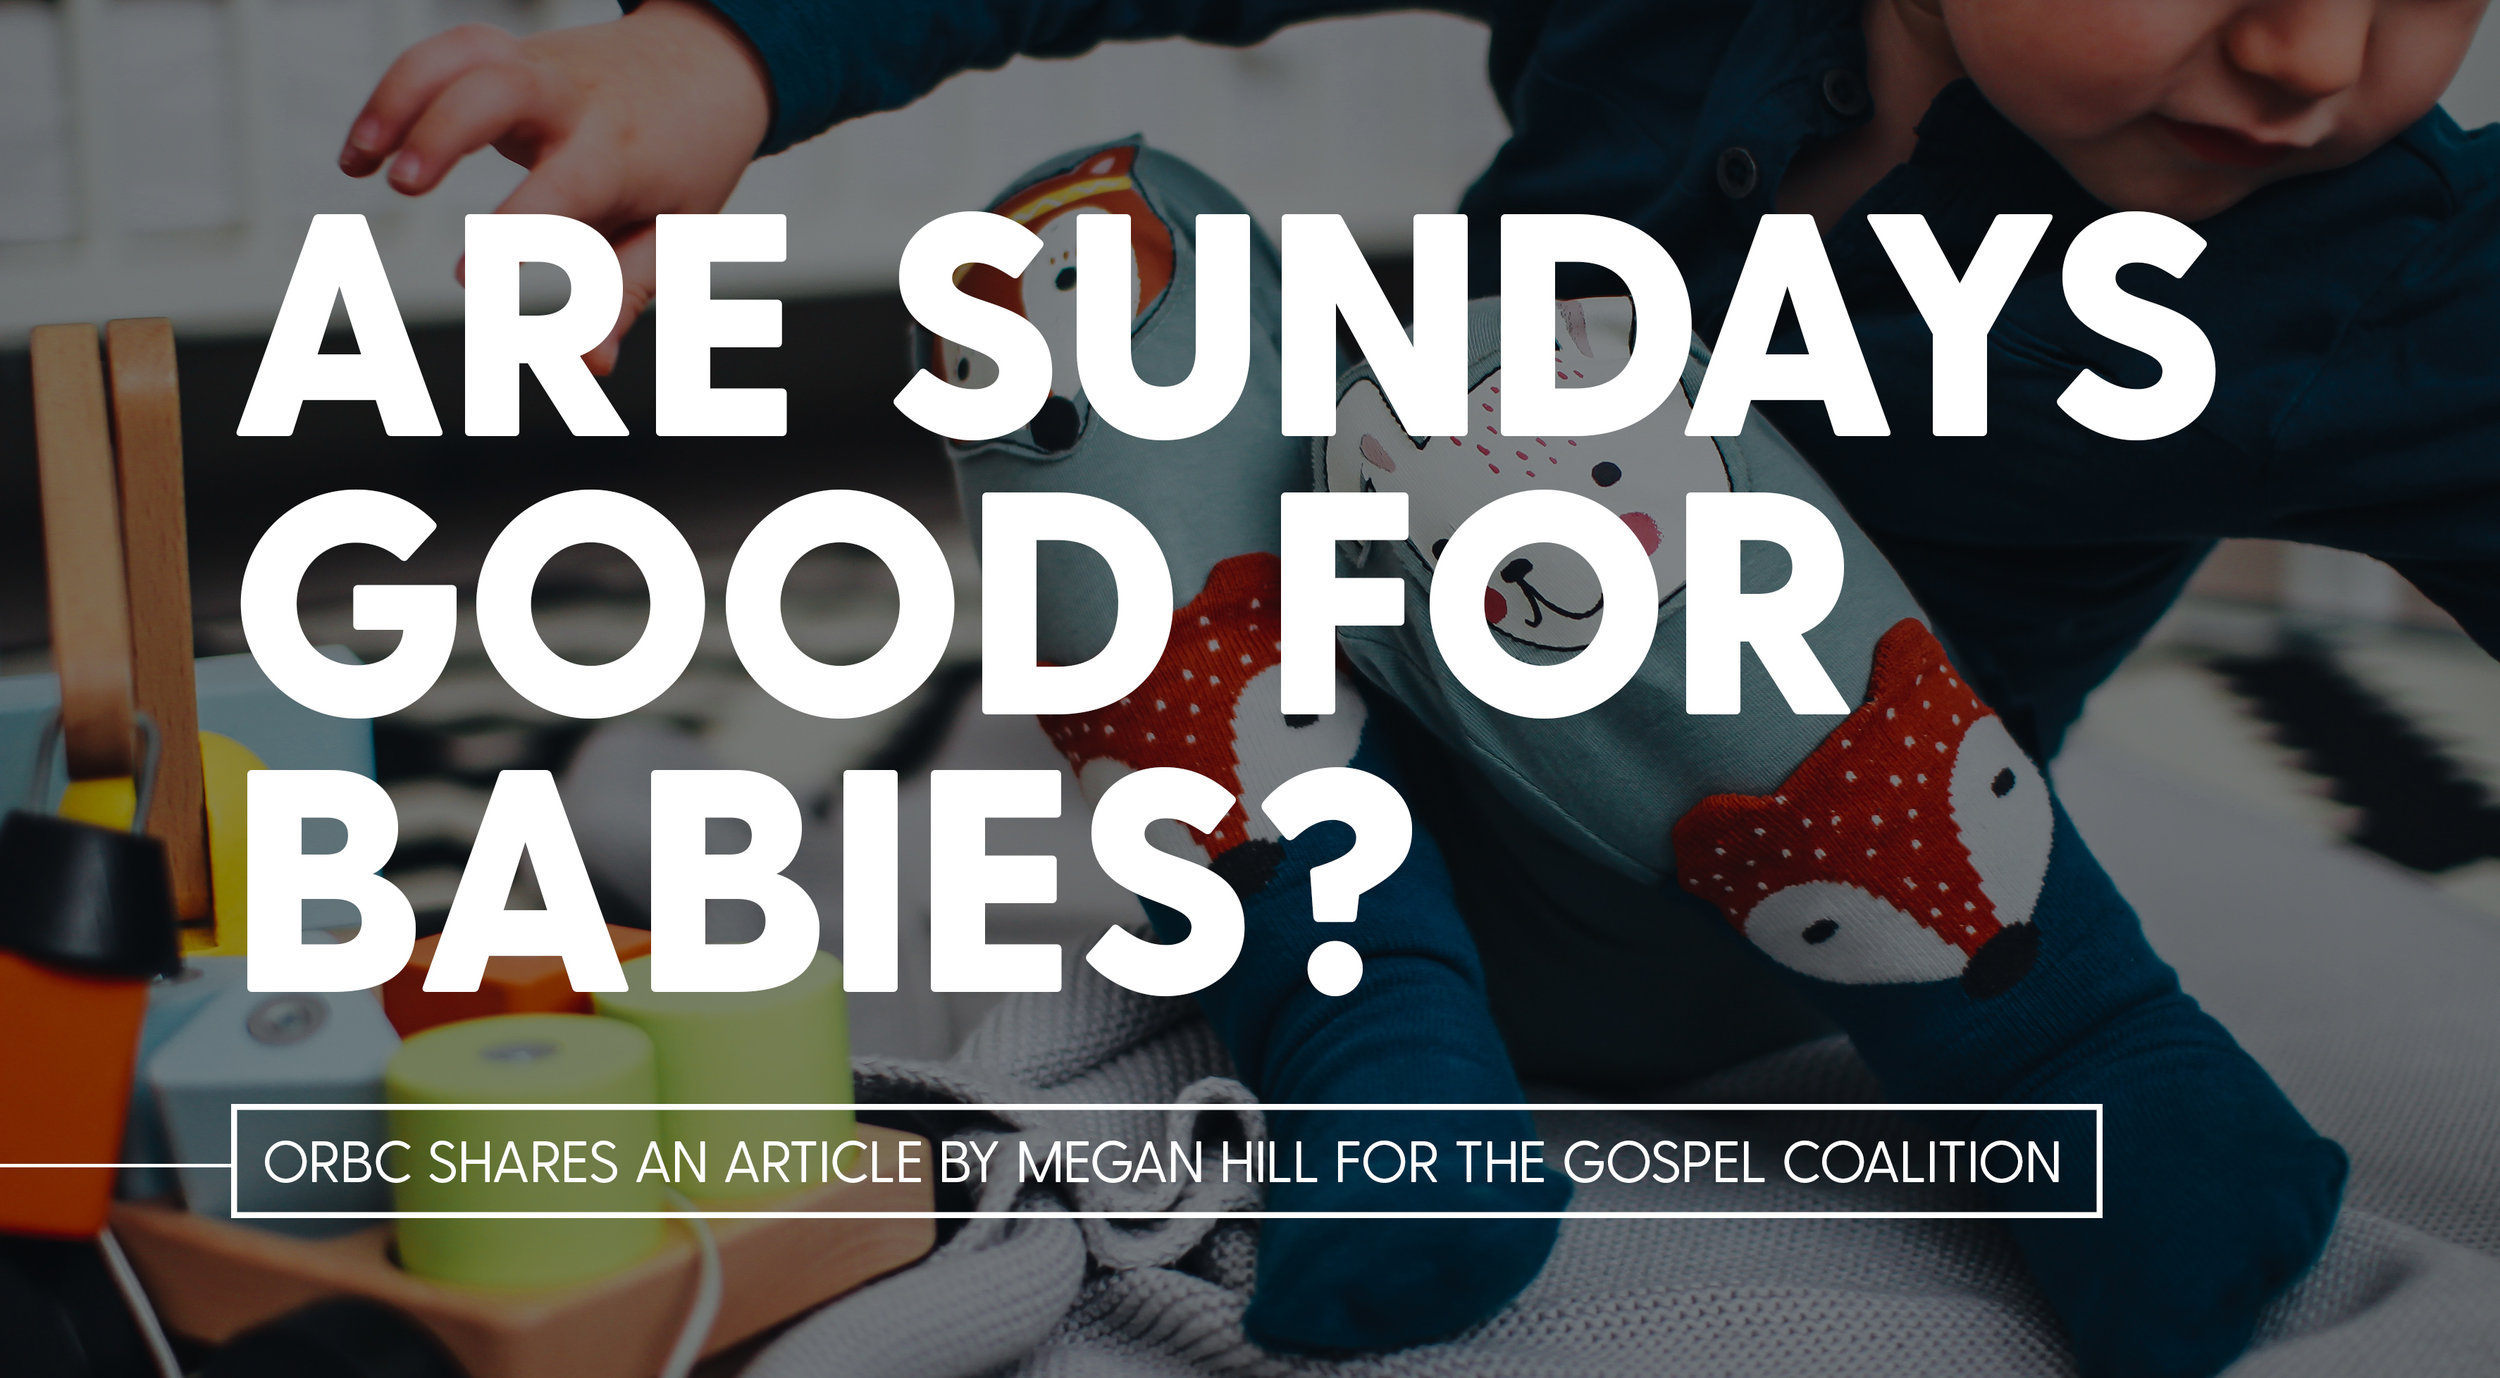 Are Sundays Good for Babies.jpg